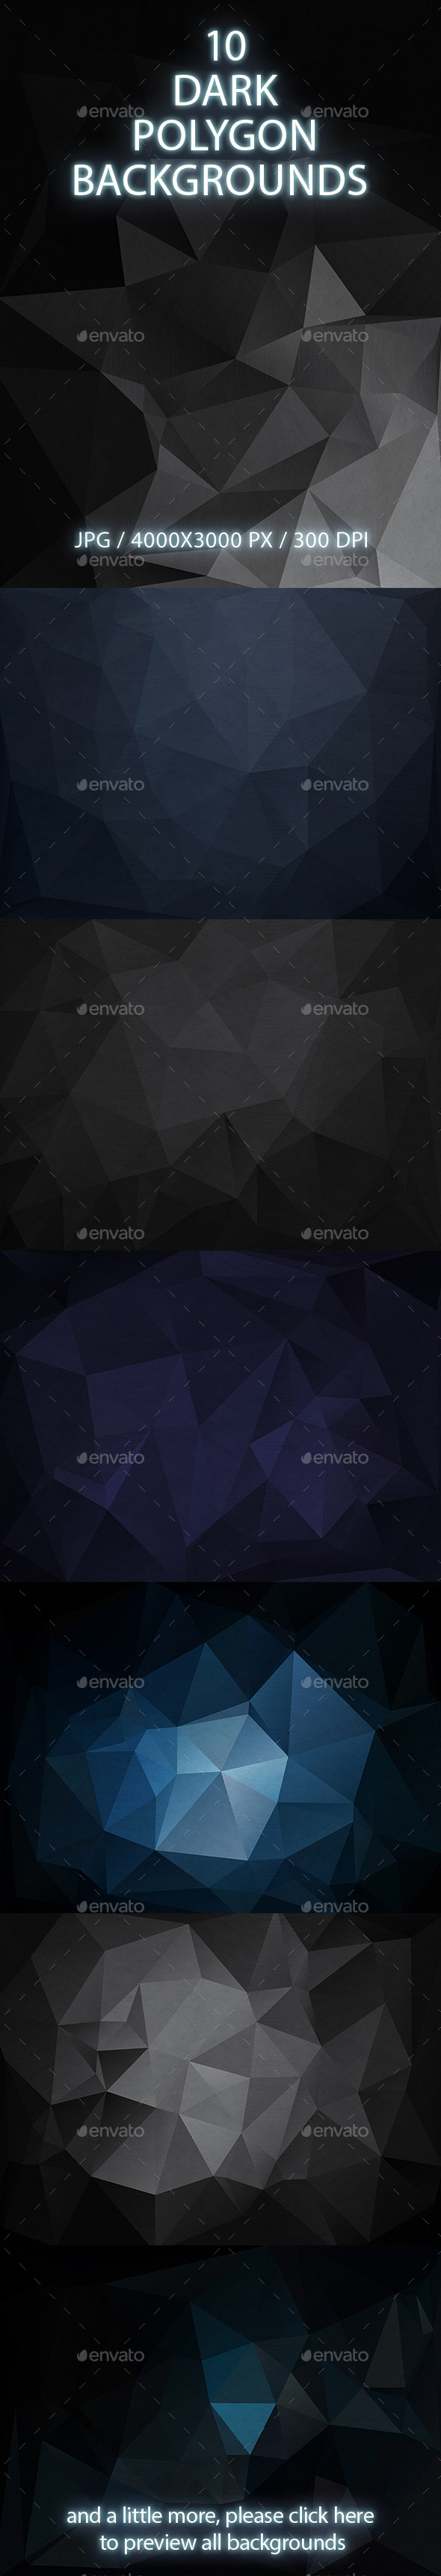 10 Dark Polygon Backgrounds - Abstract Backgrounds